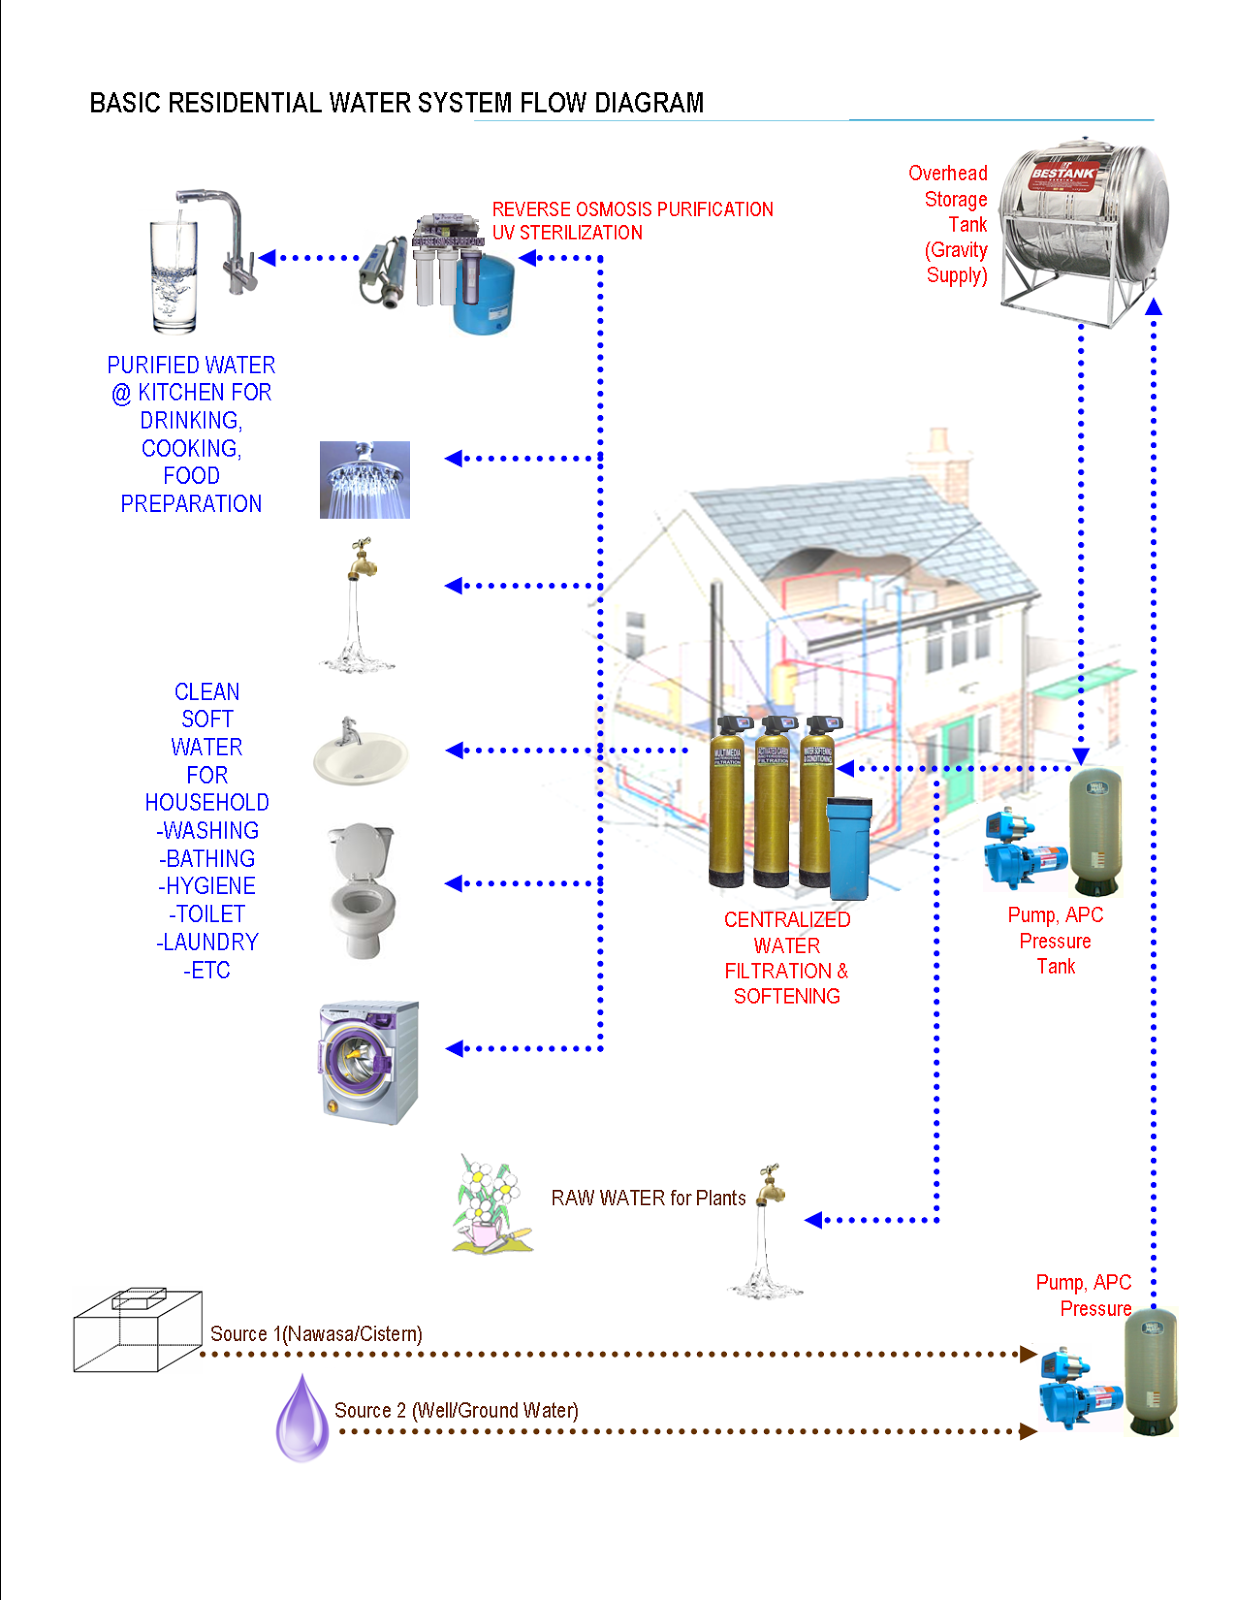 medium resolution of basic residential water systems flow diagram centralized water filtration softening system delivers purified water at kitchen for drinking cooking